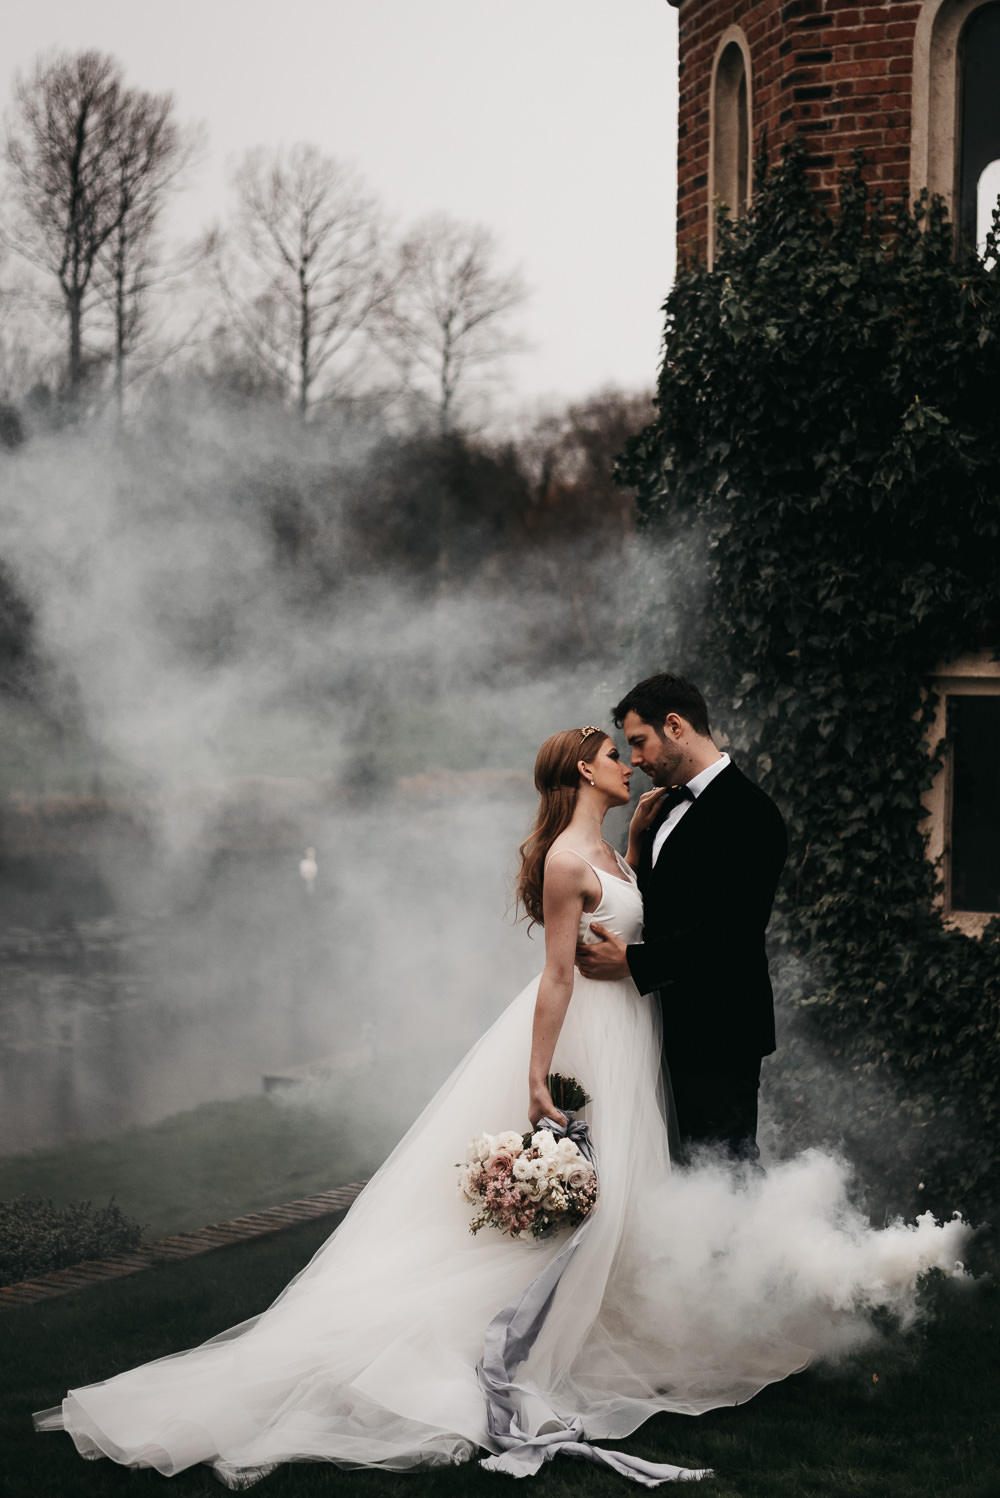 Atmospheric & Wintry Swan Lake Wedding Ideas